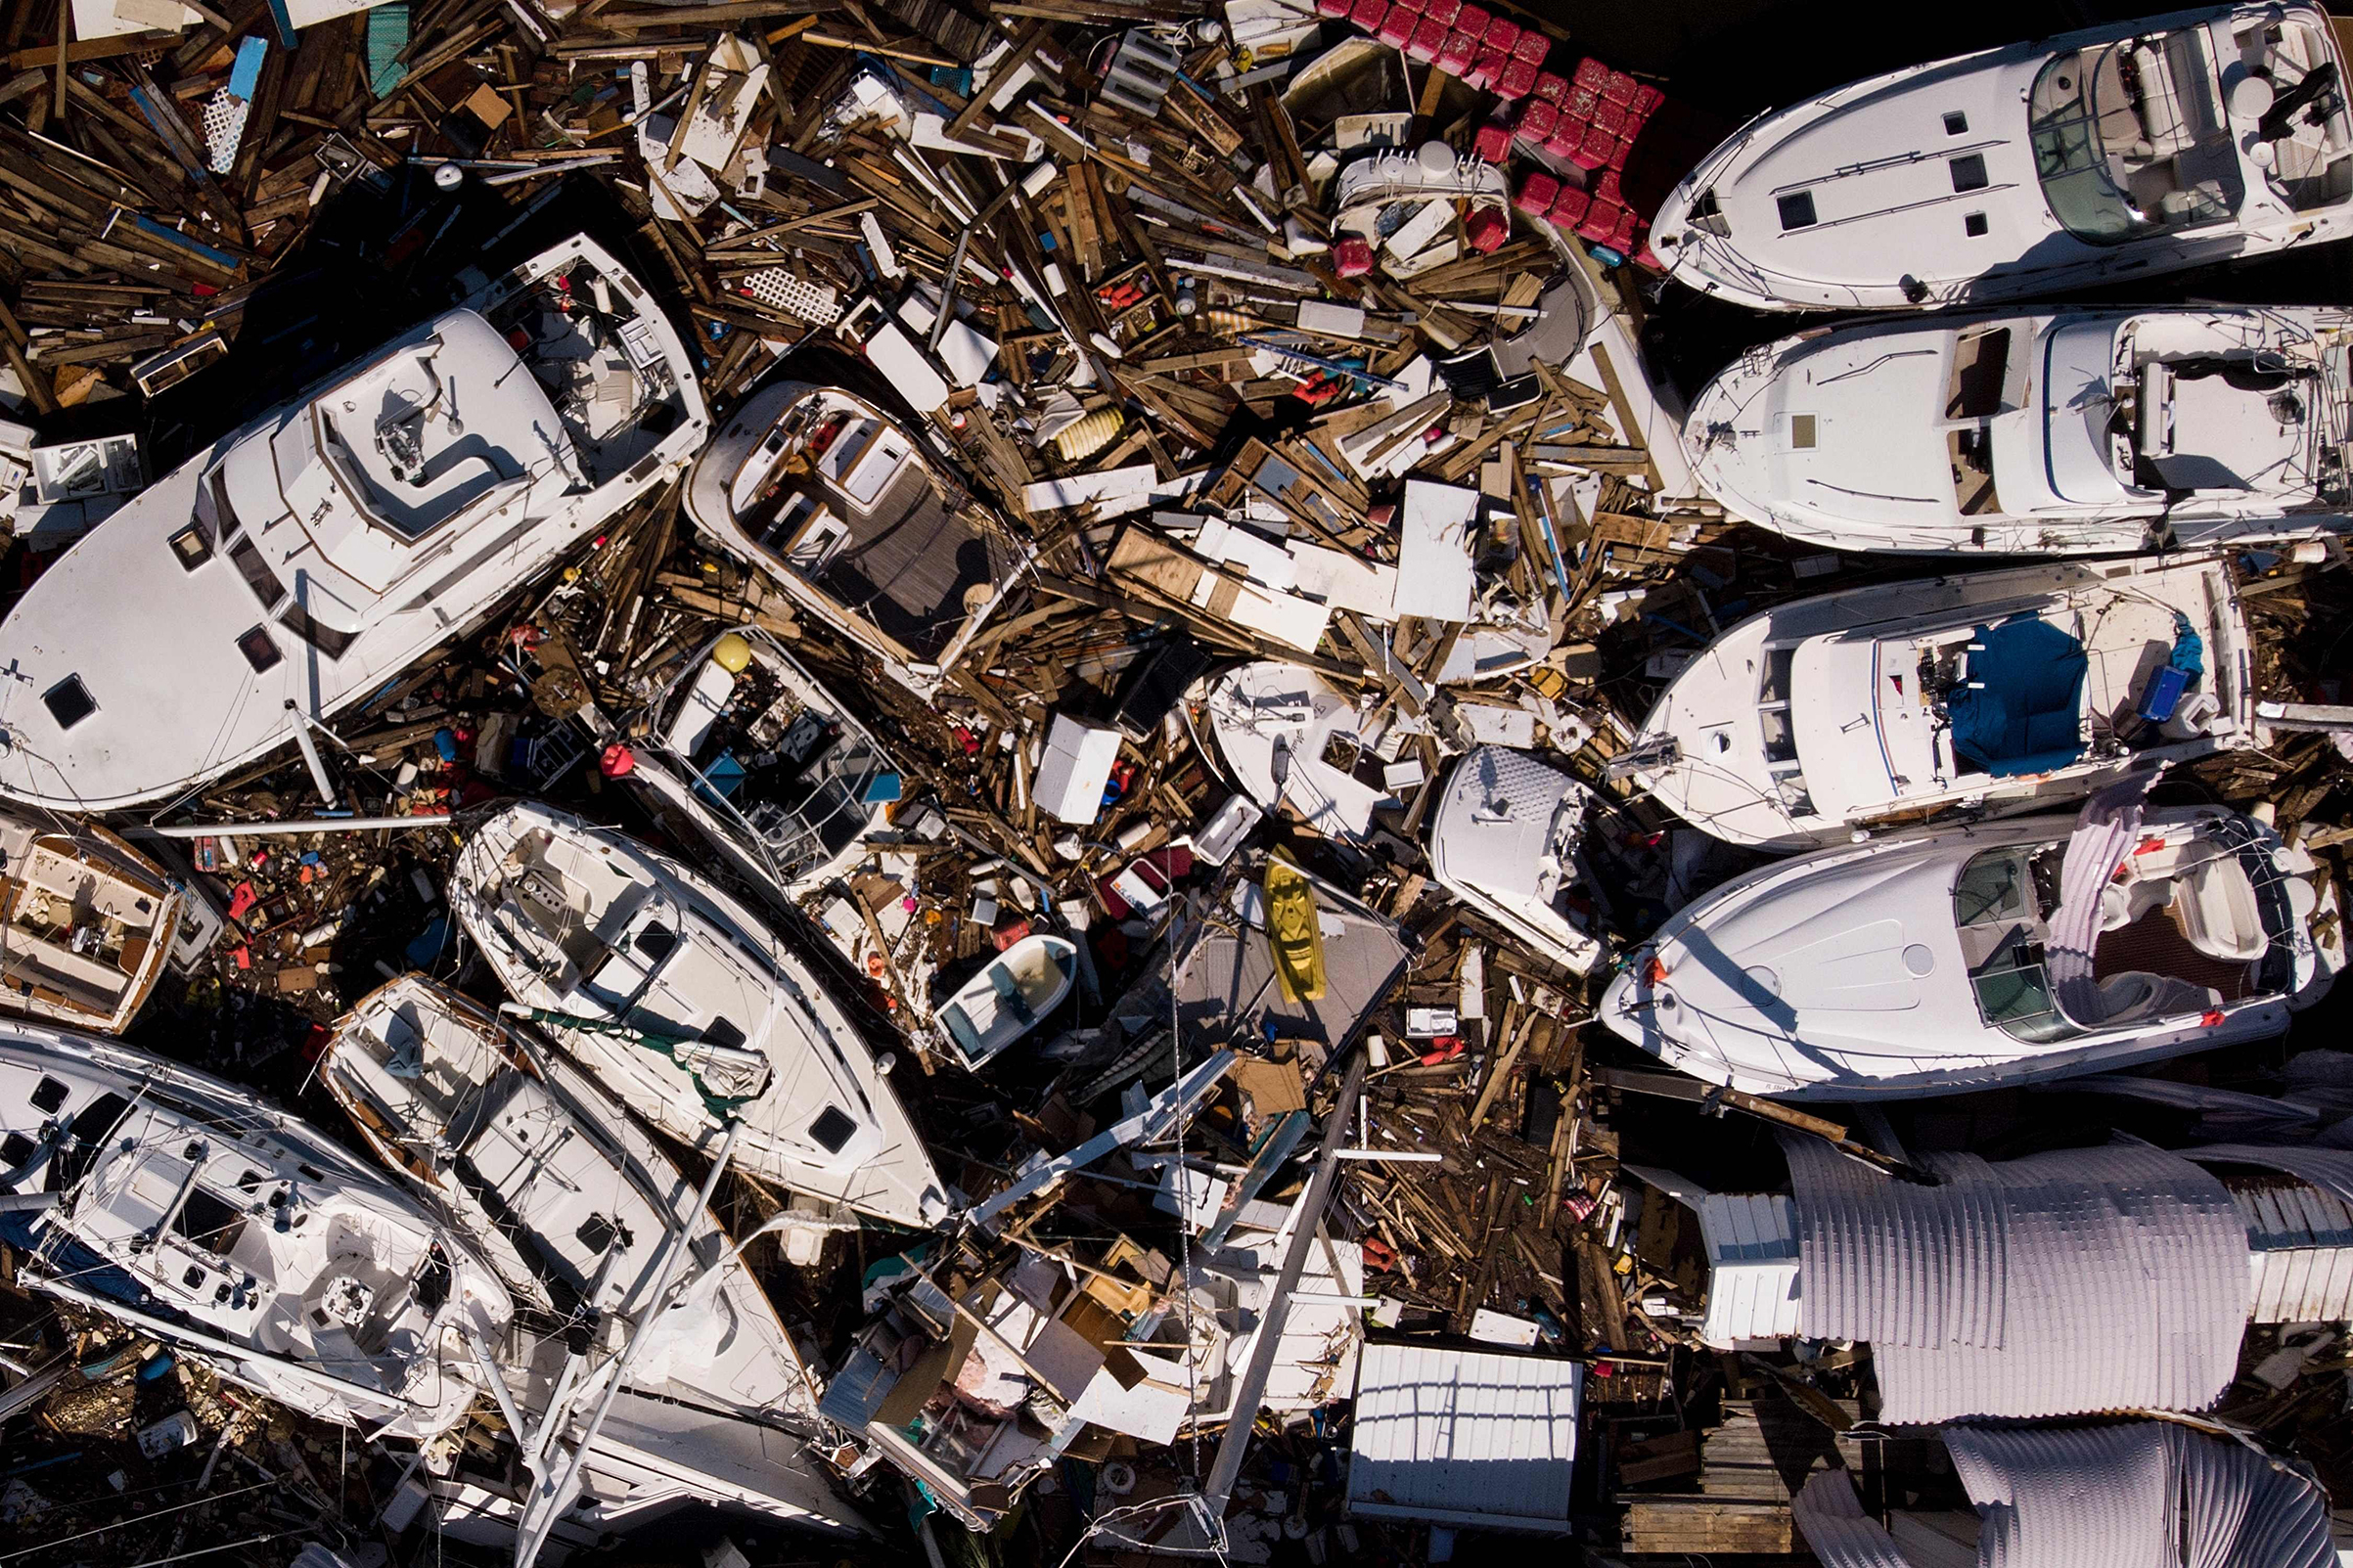 Storm damaged boats are seen in the aftermath of Hurricane Michael on Oct. 11, 2018 in Panama City, Fla.